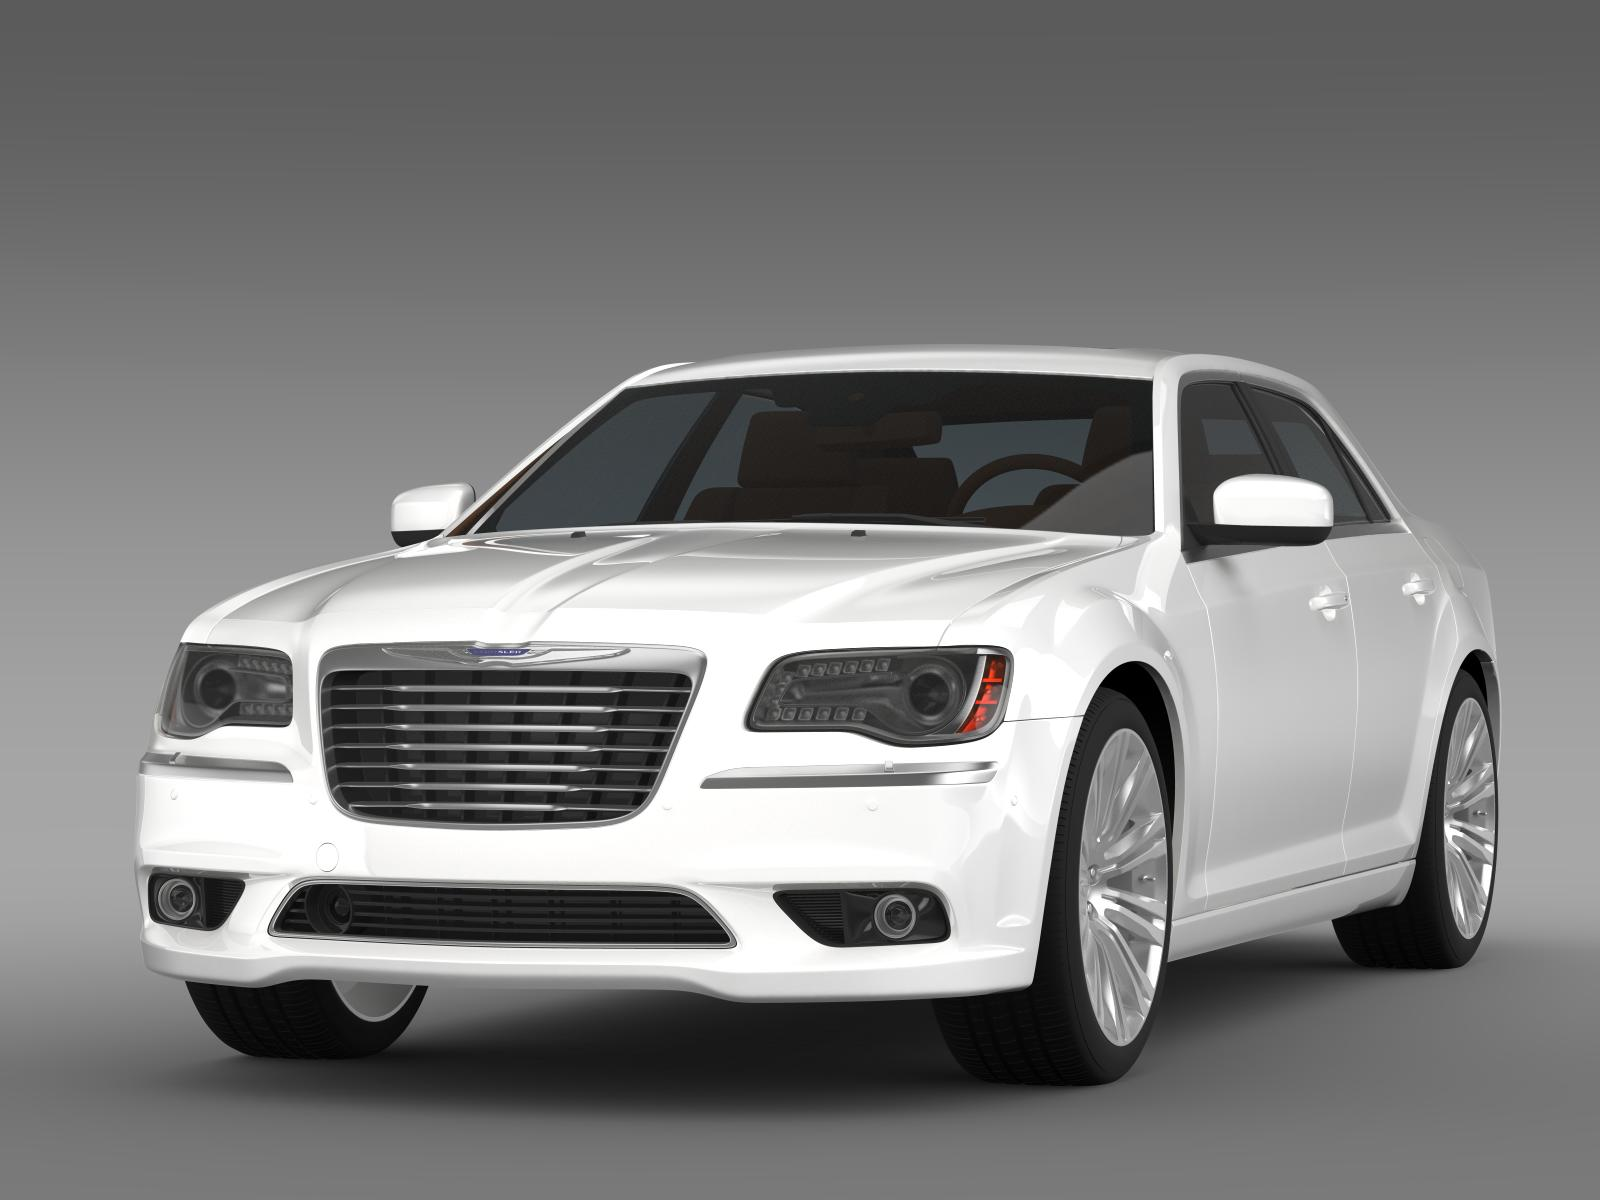 chrysler 300c 2013 3d model. Black Bedroom Furniture Sets. Home Design Ideas